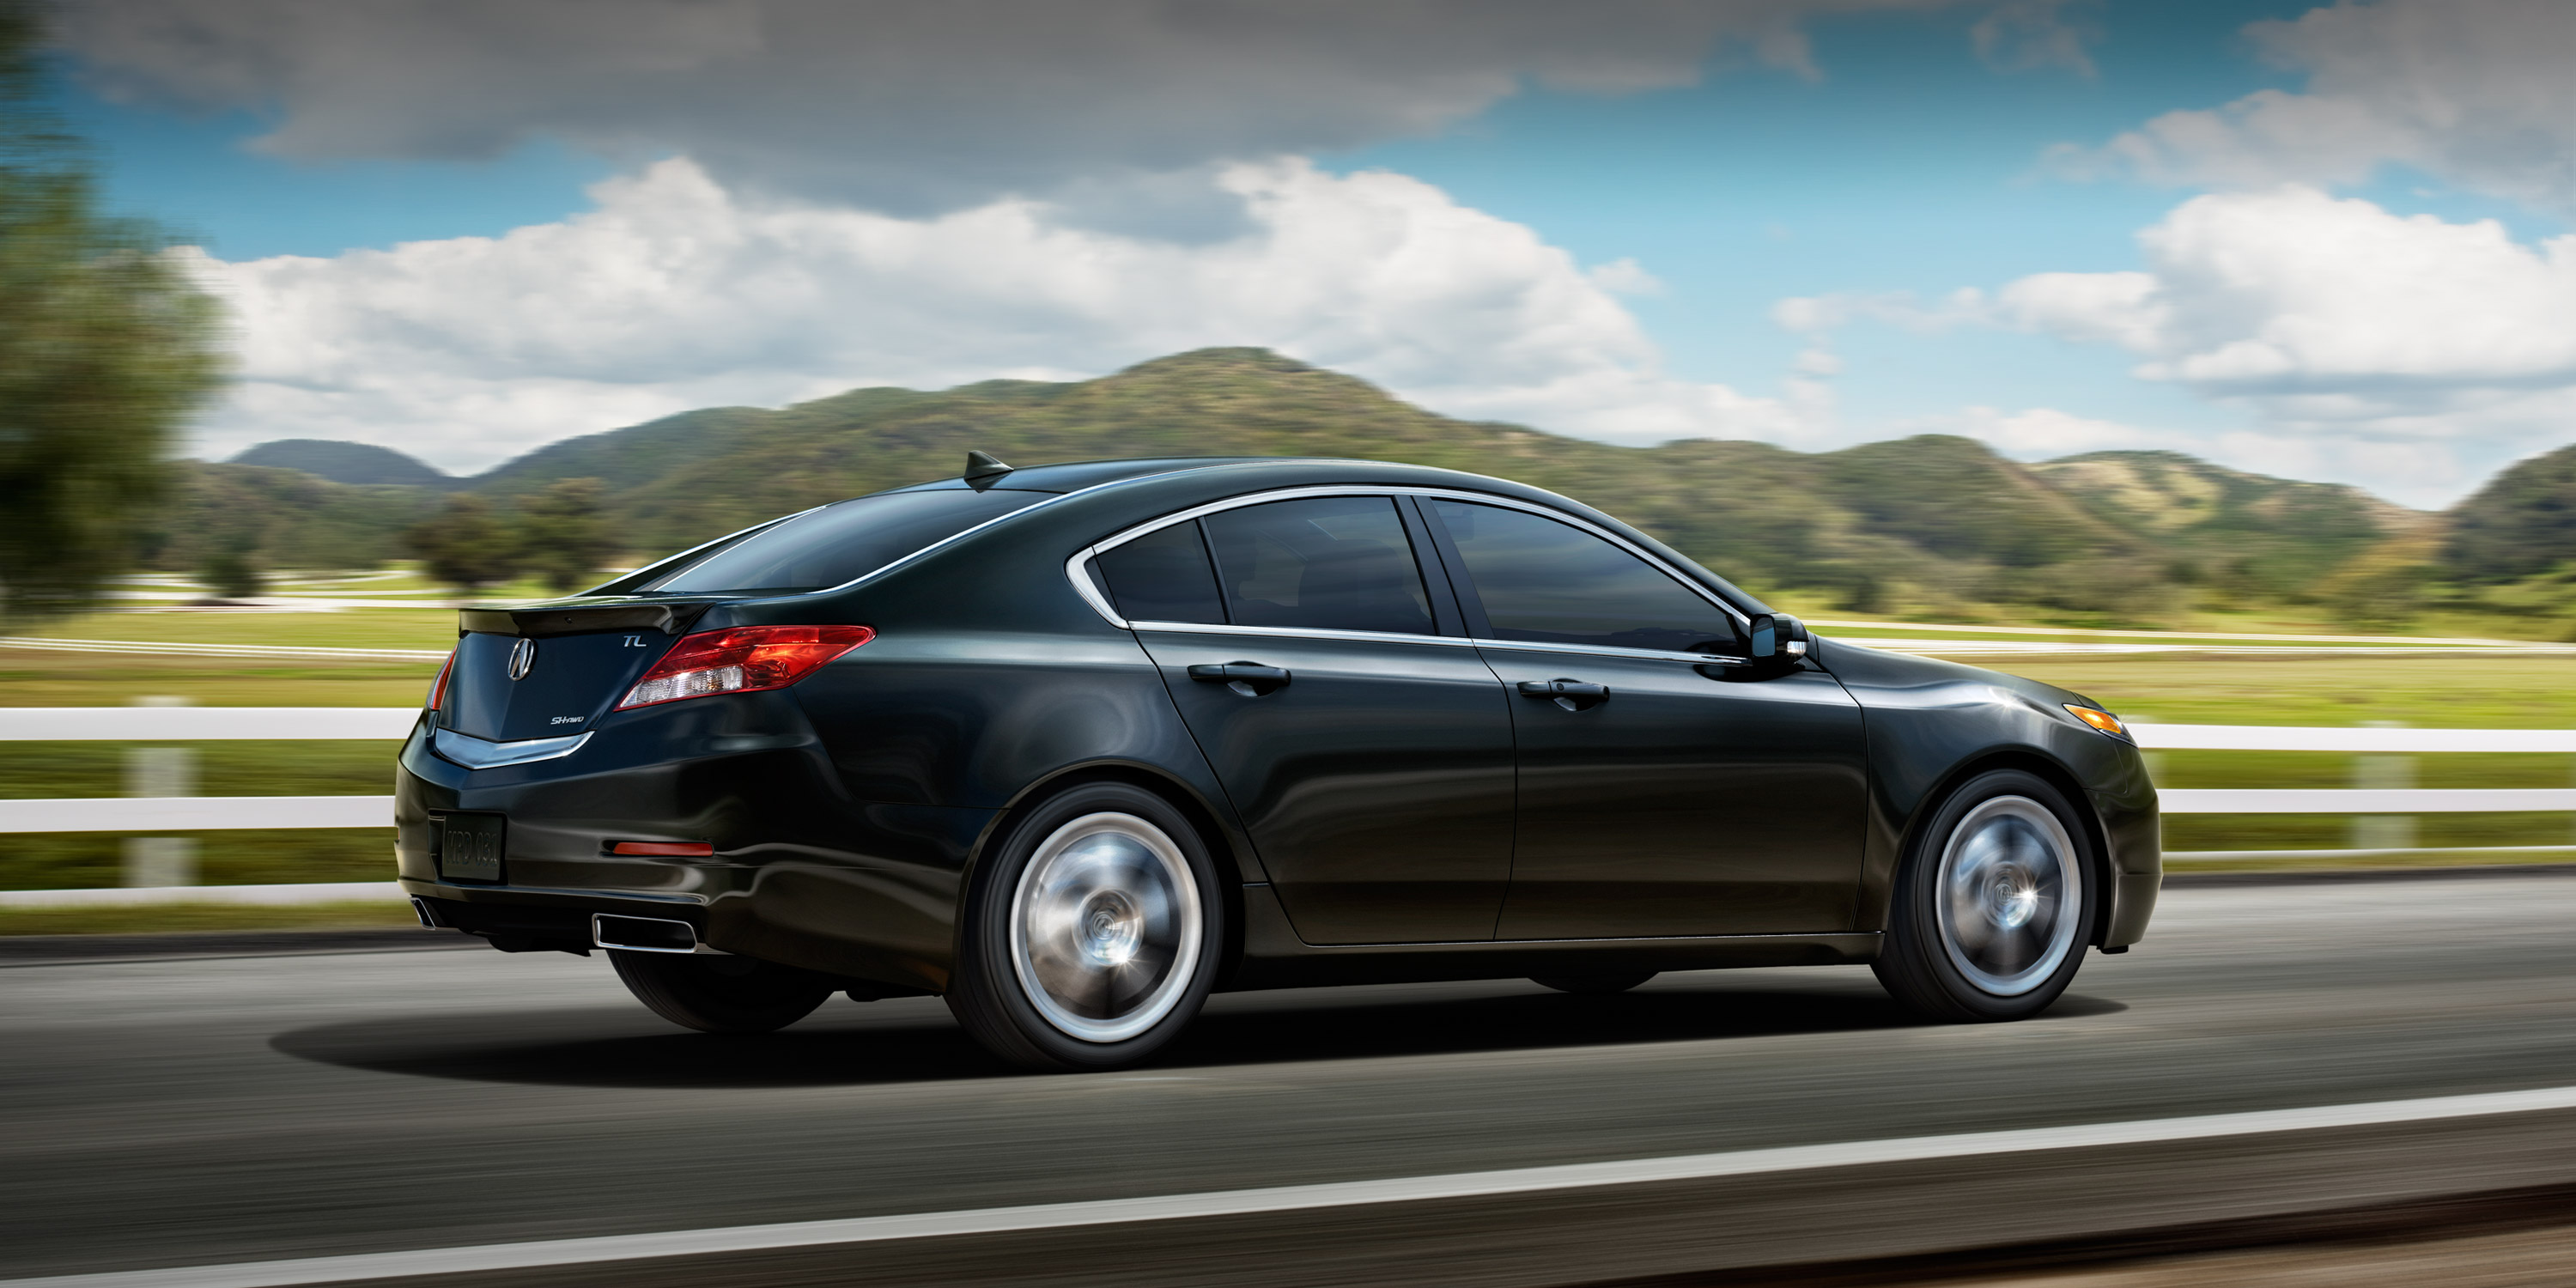 2014 Acura TL Now on Sale | Butler Auto Group's Blog